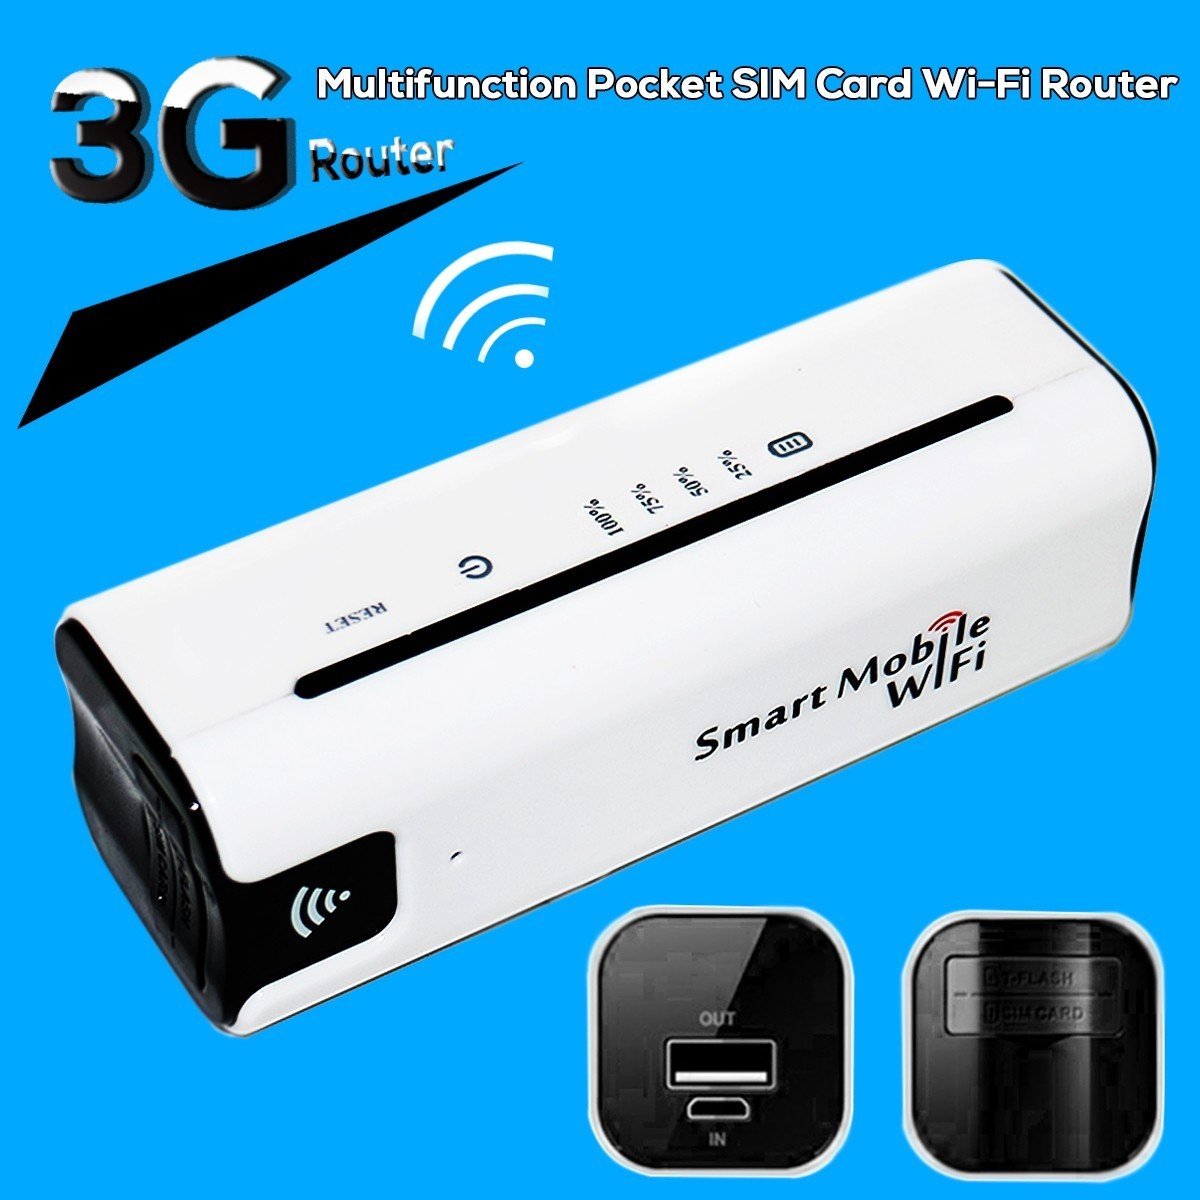 New 3G Mobile Portable Multifunctional Mini Wireless Power Bank Battary Charger 3G WiFi Router(China (Mainland))